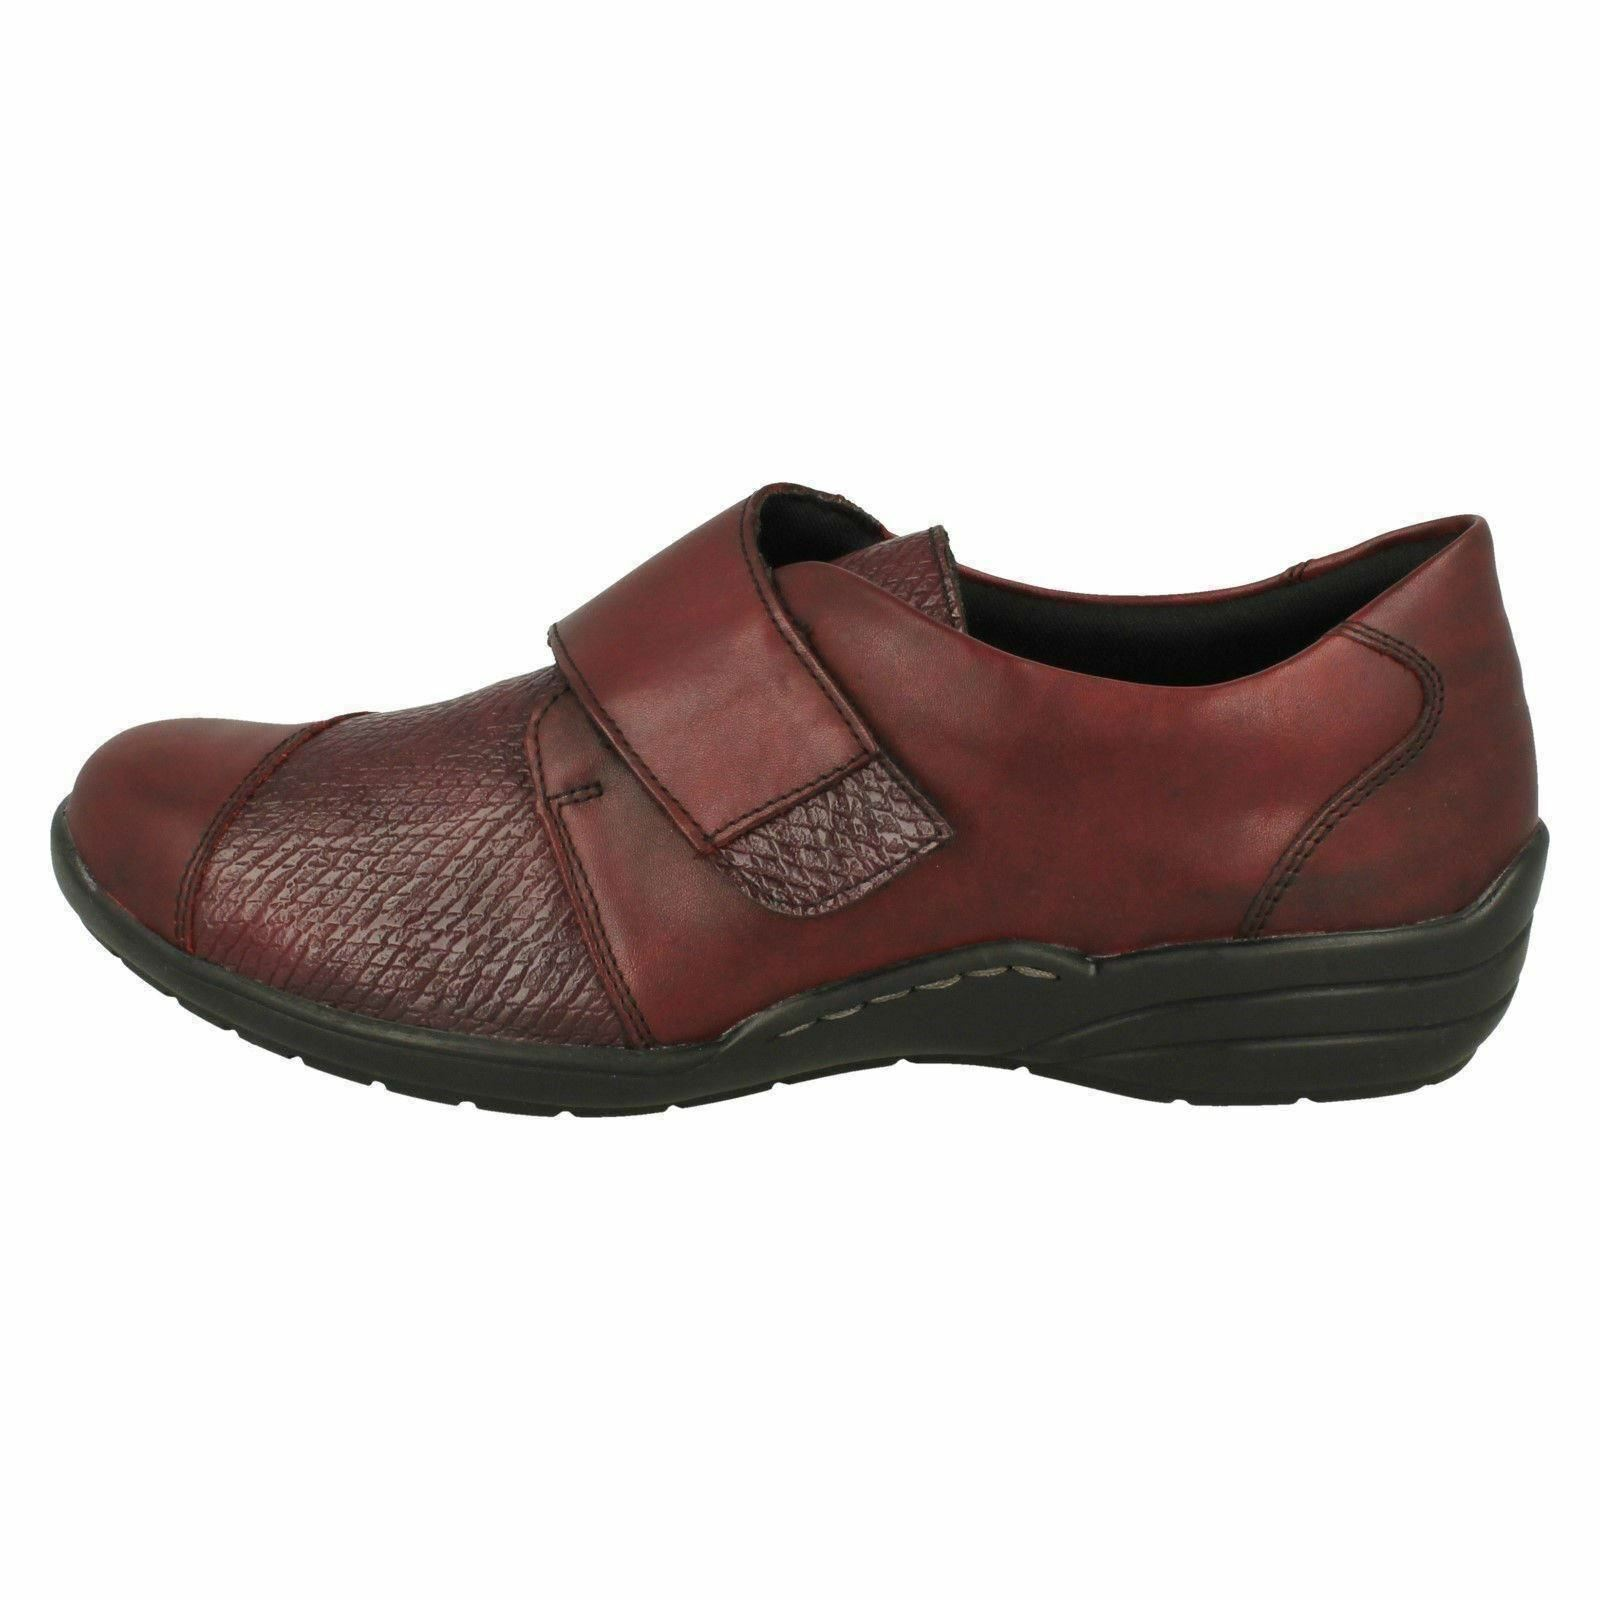 Donna Rossa Remonte R7628 pelle Rossa Donna   Basse Casual extra Larghezza 9f35c0